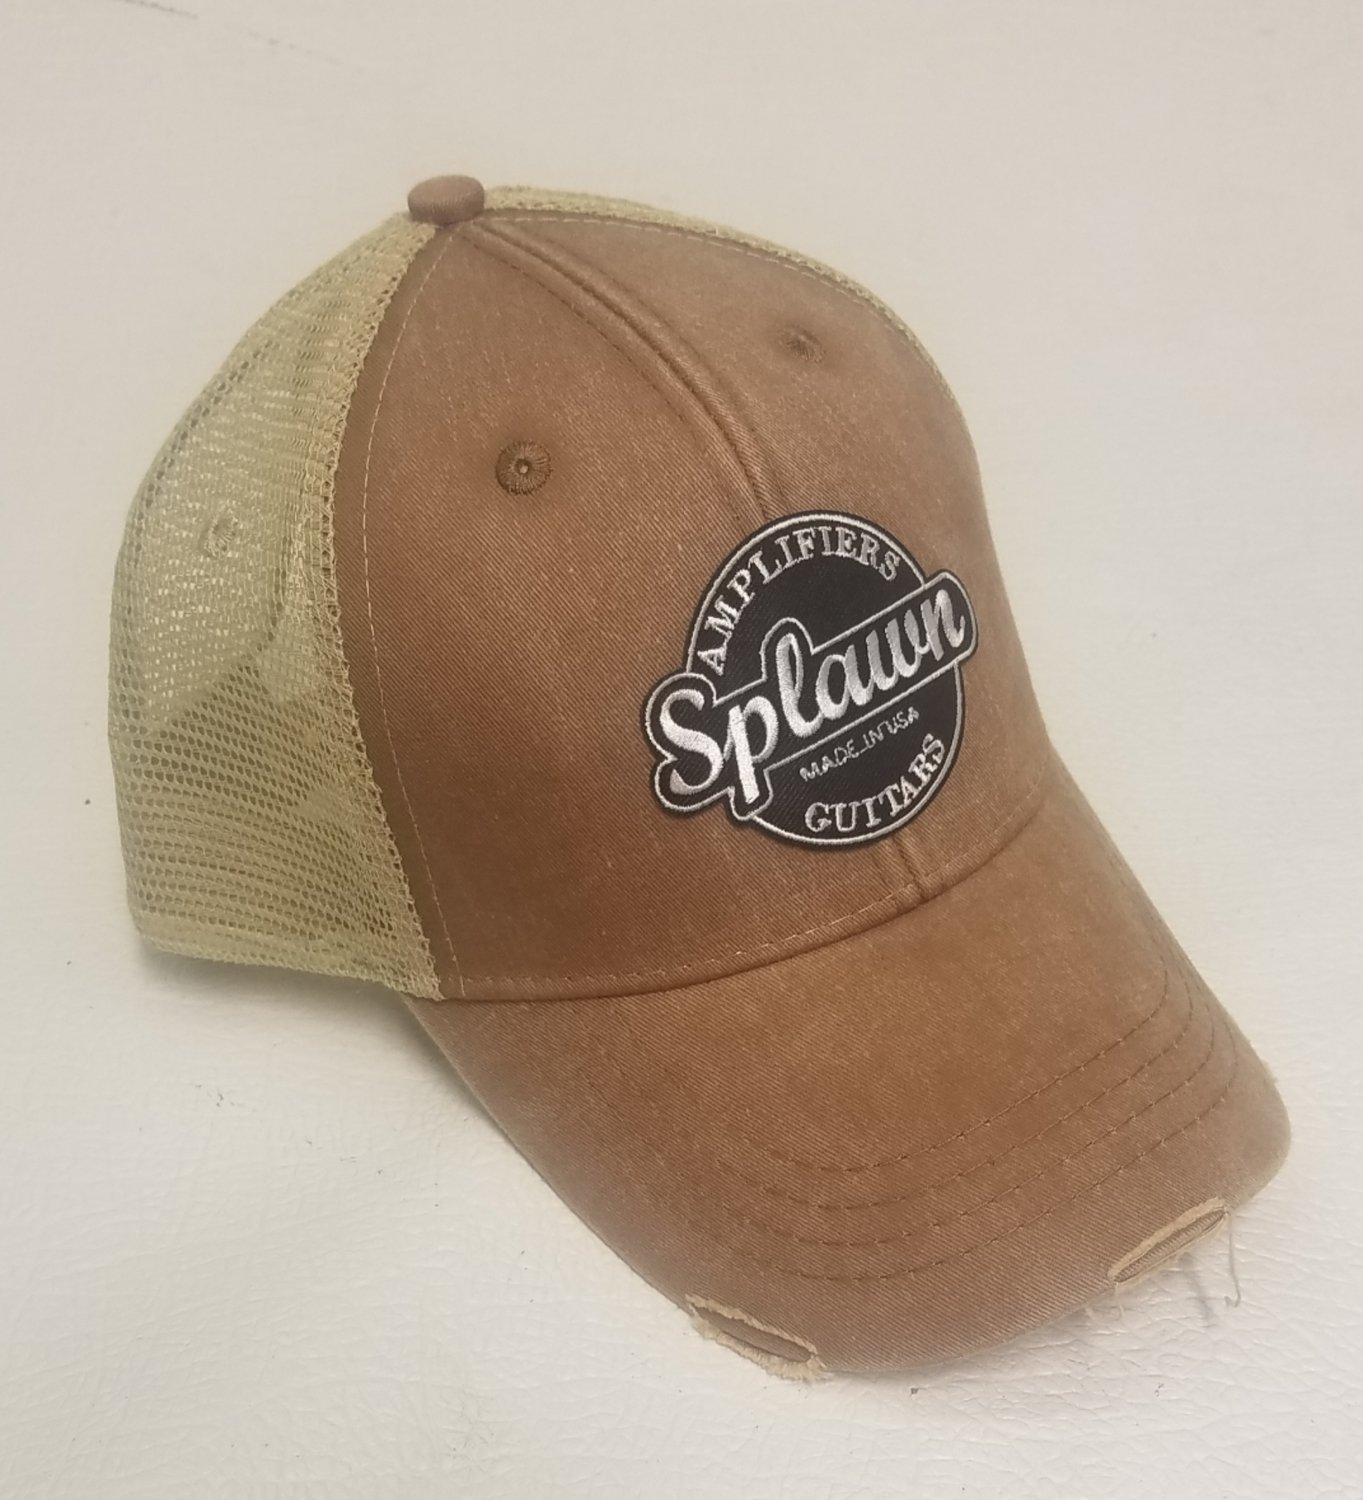 Splawn Amplification Guitars Trucker Cap Adams OL102 Ollie Miss Mud with Tan Mesh Center Logo